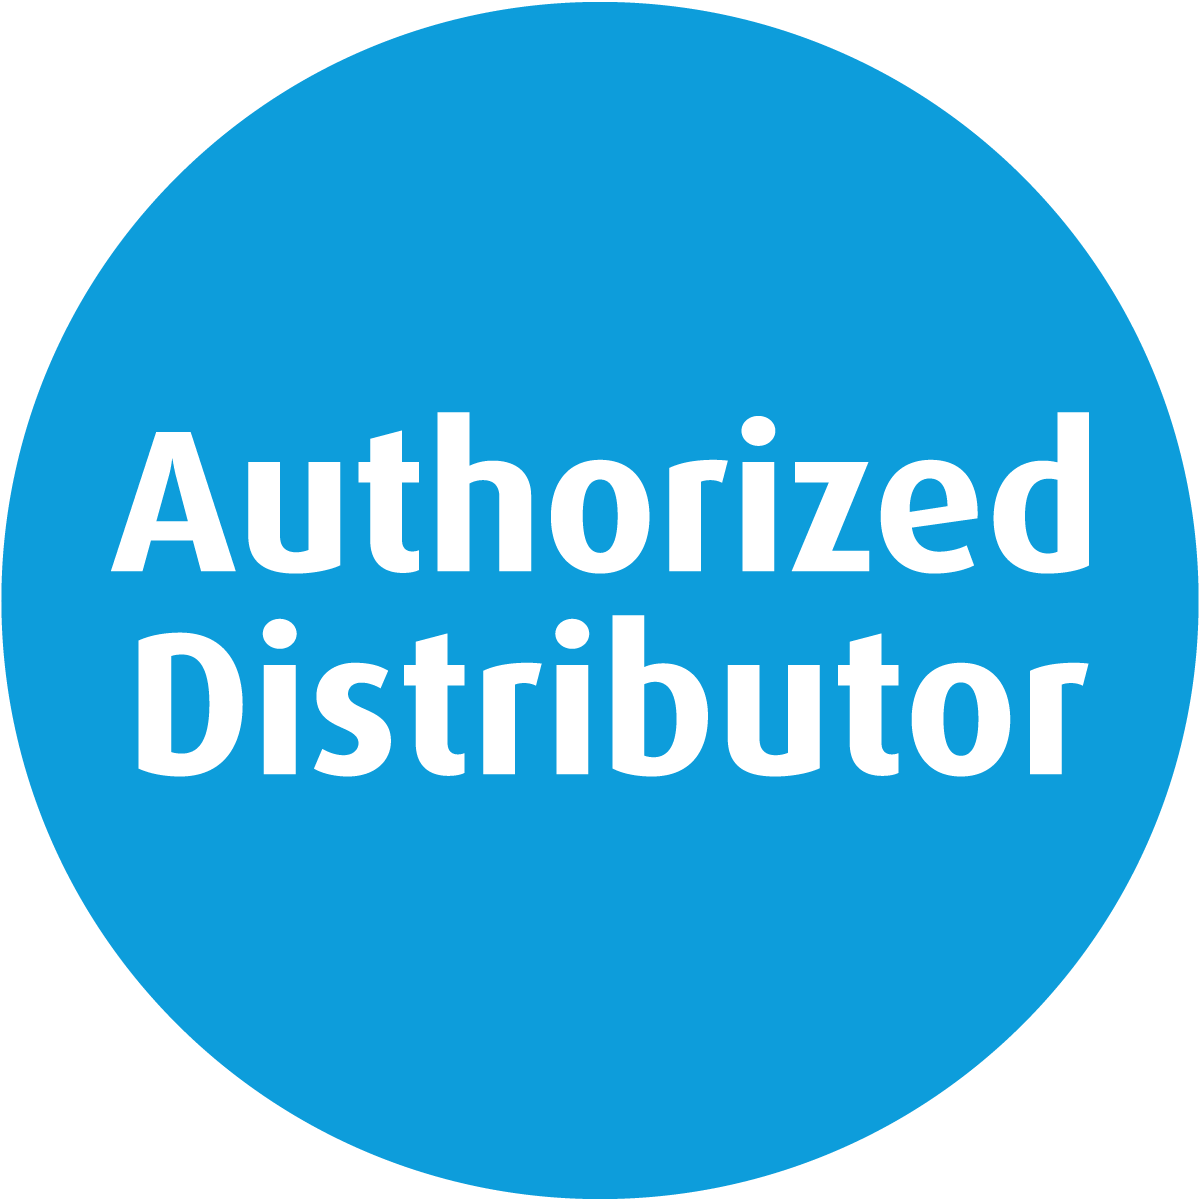 UTS Authorized Distributors